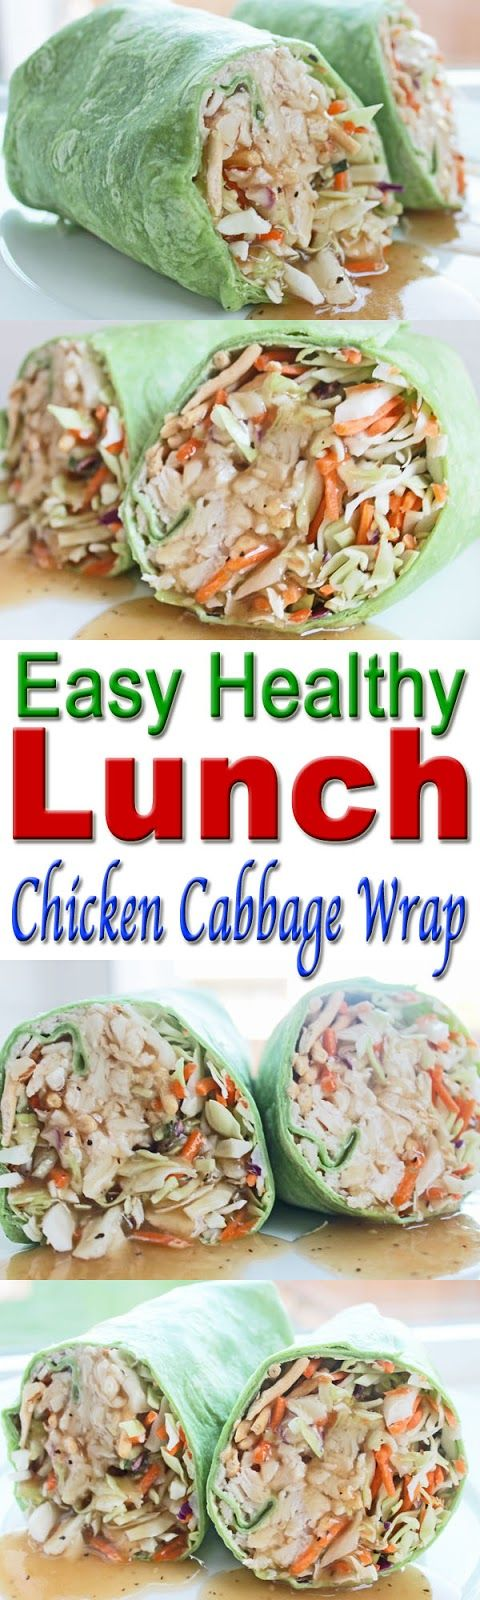 Meal Chicken womens Healthy and Meals and Easy Clean Lunch Loss Plan Cheap Healthy Meal Wrap   Cabbage   Eating Recipe    Weight charm bracelets Plan